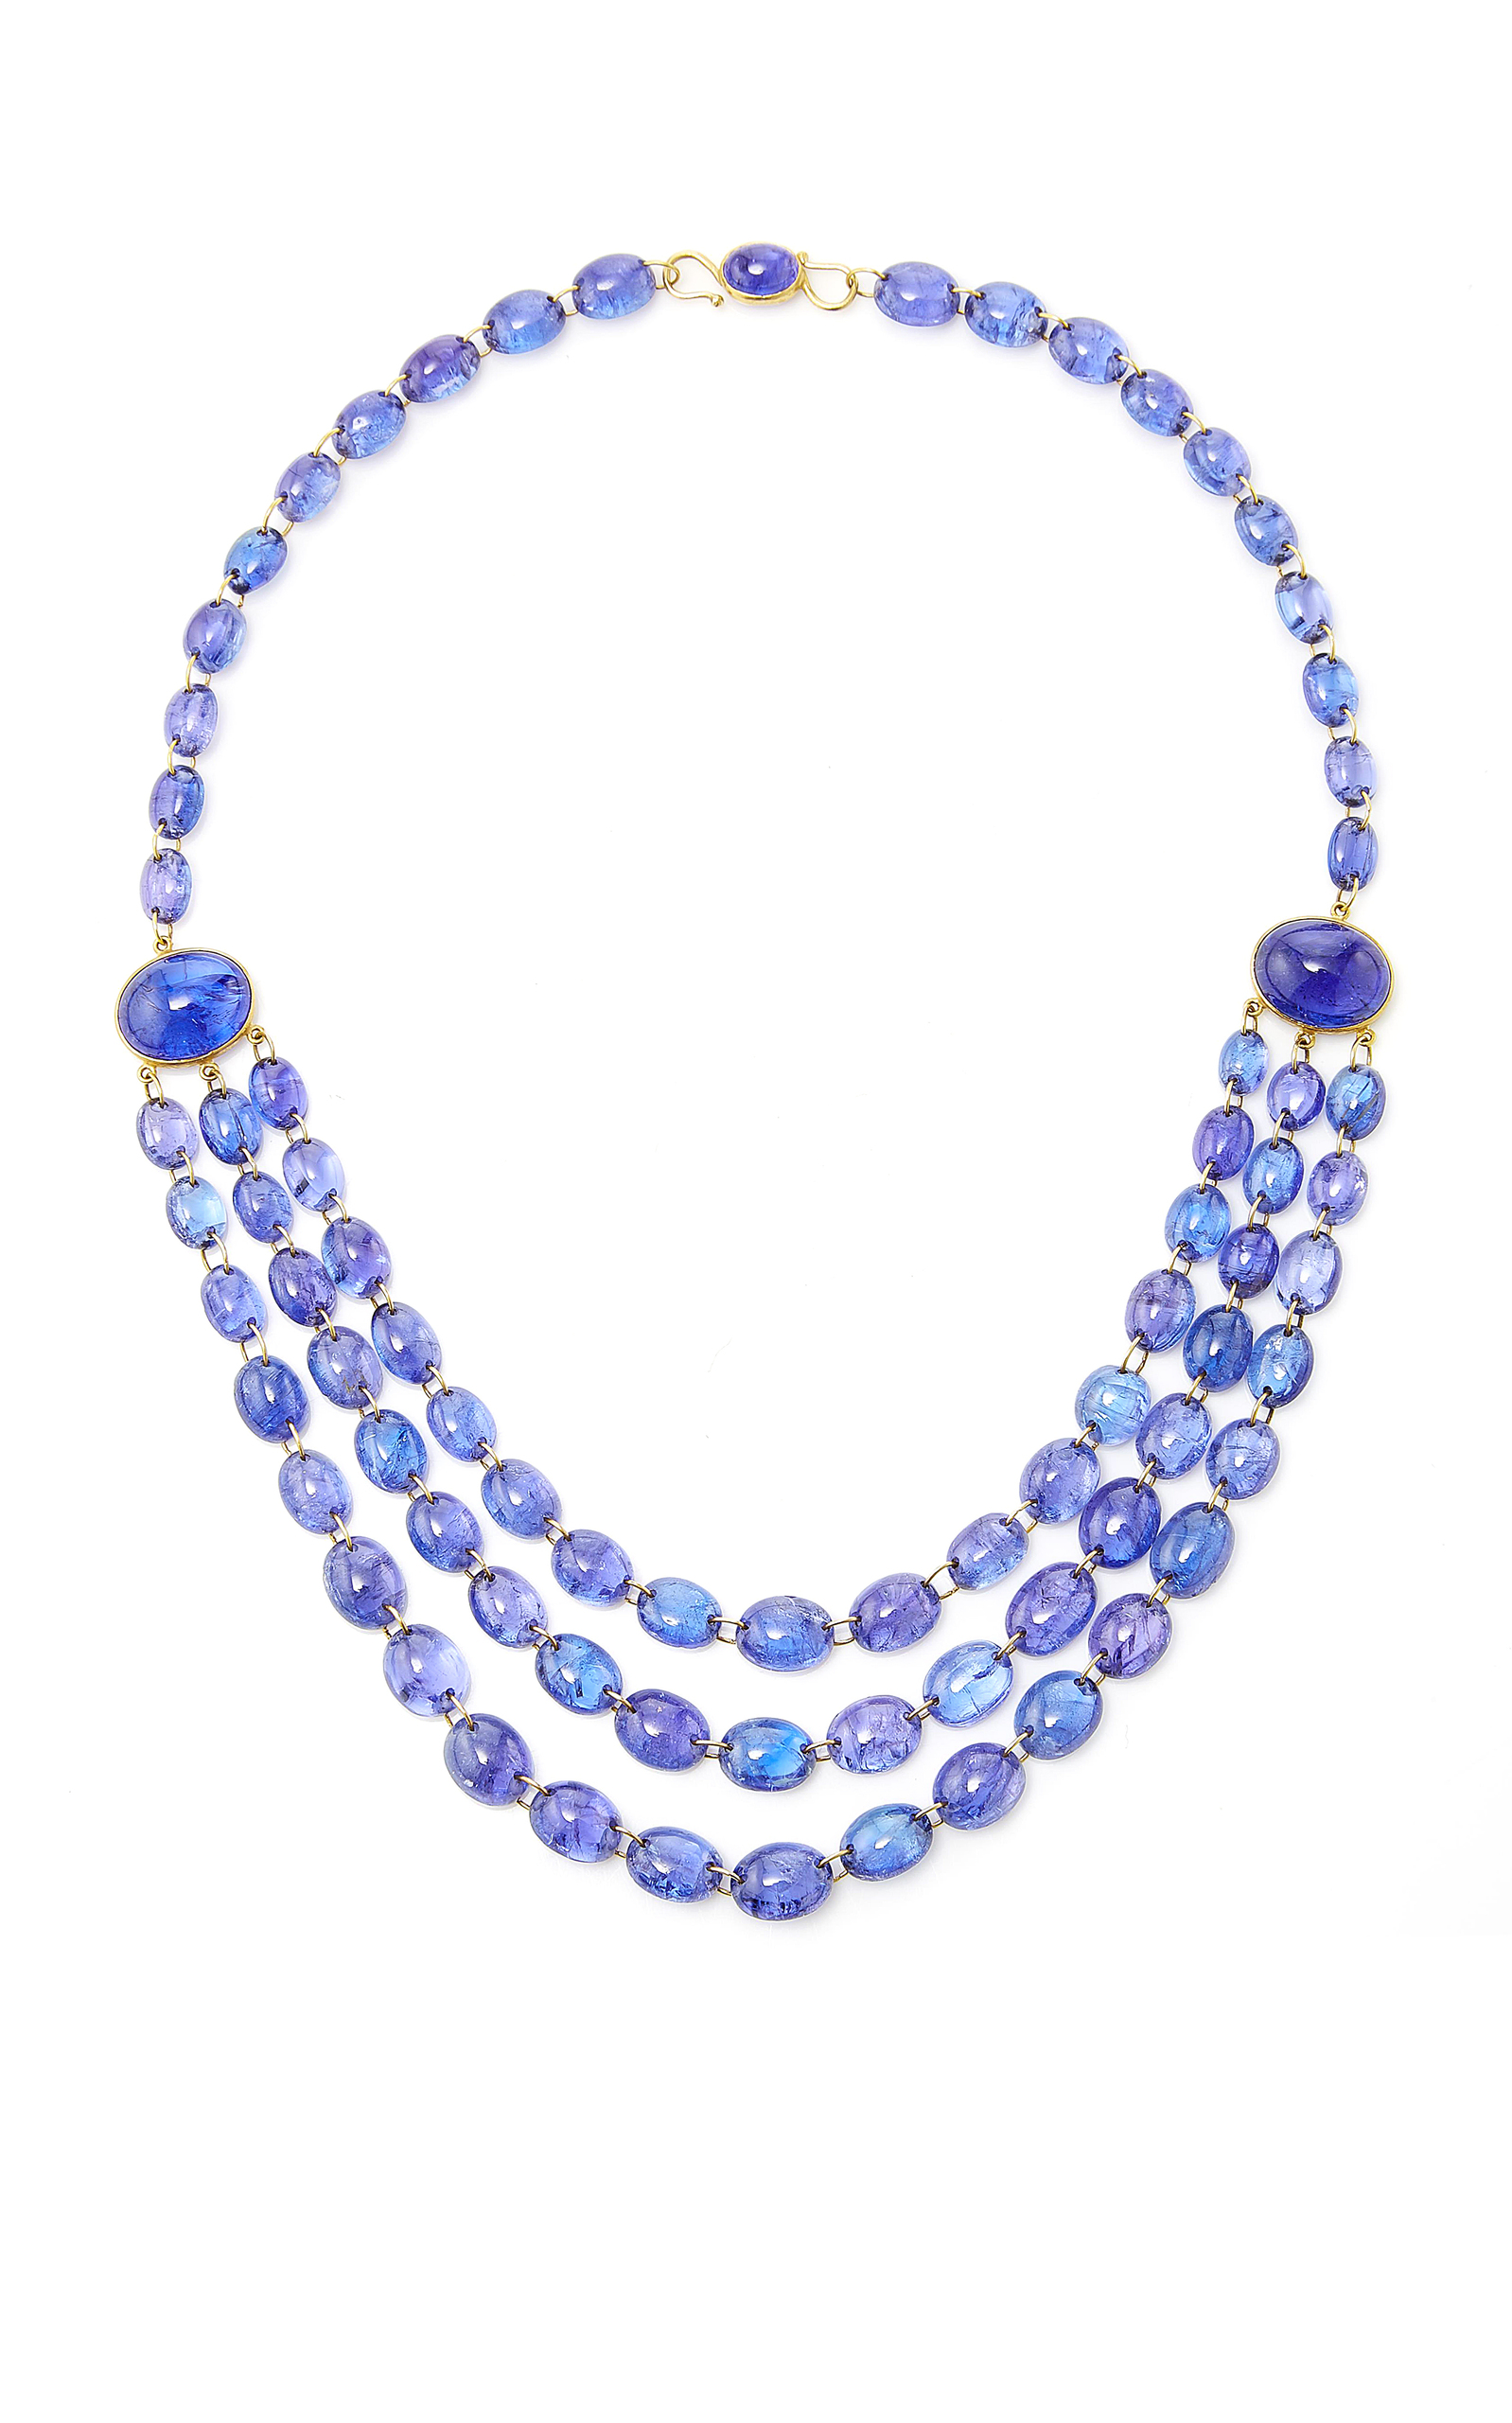 topaz lulumargot and multichain london blue products moldavite edit tanzanite necklace al